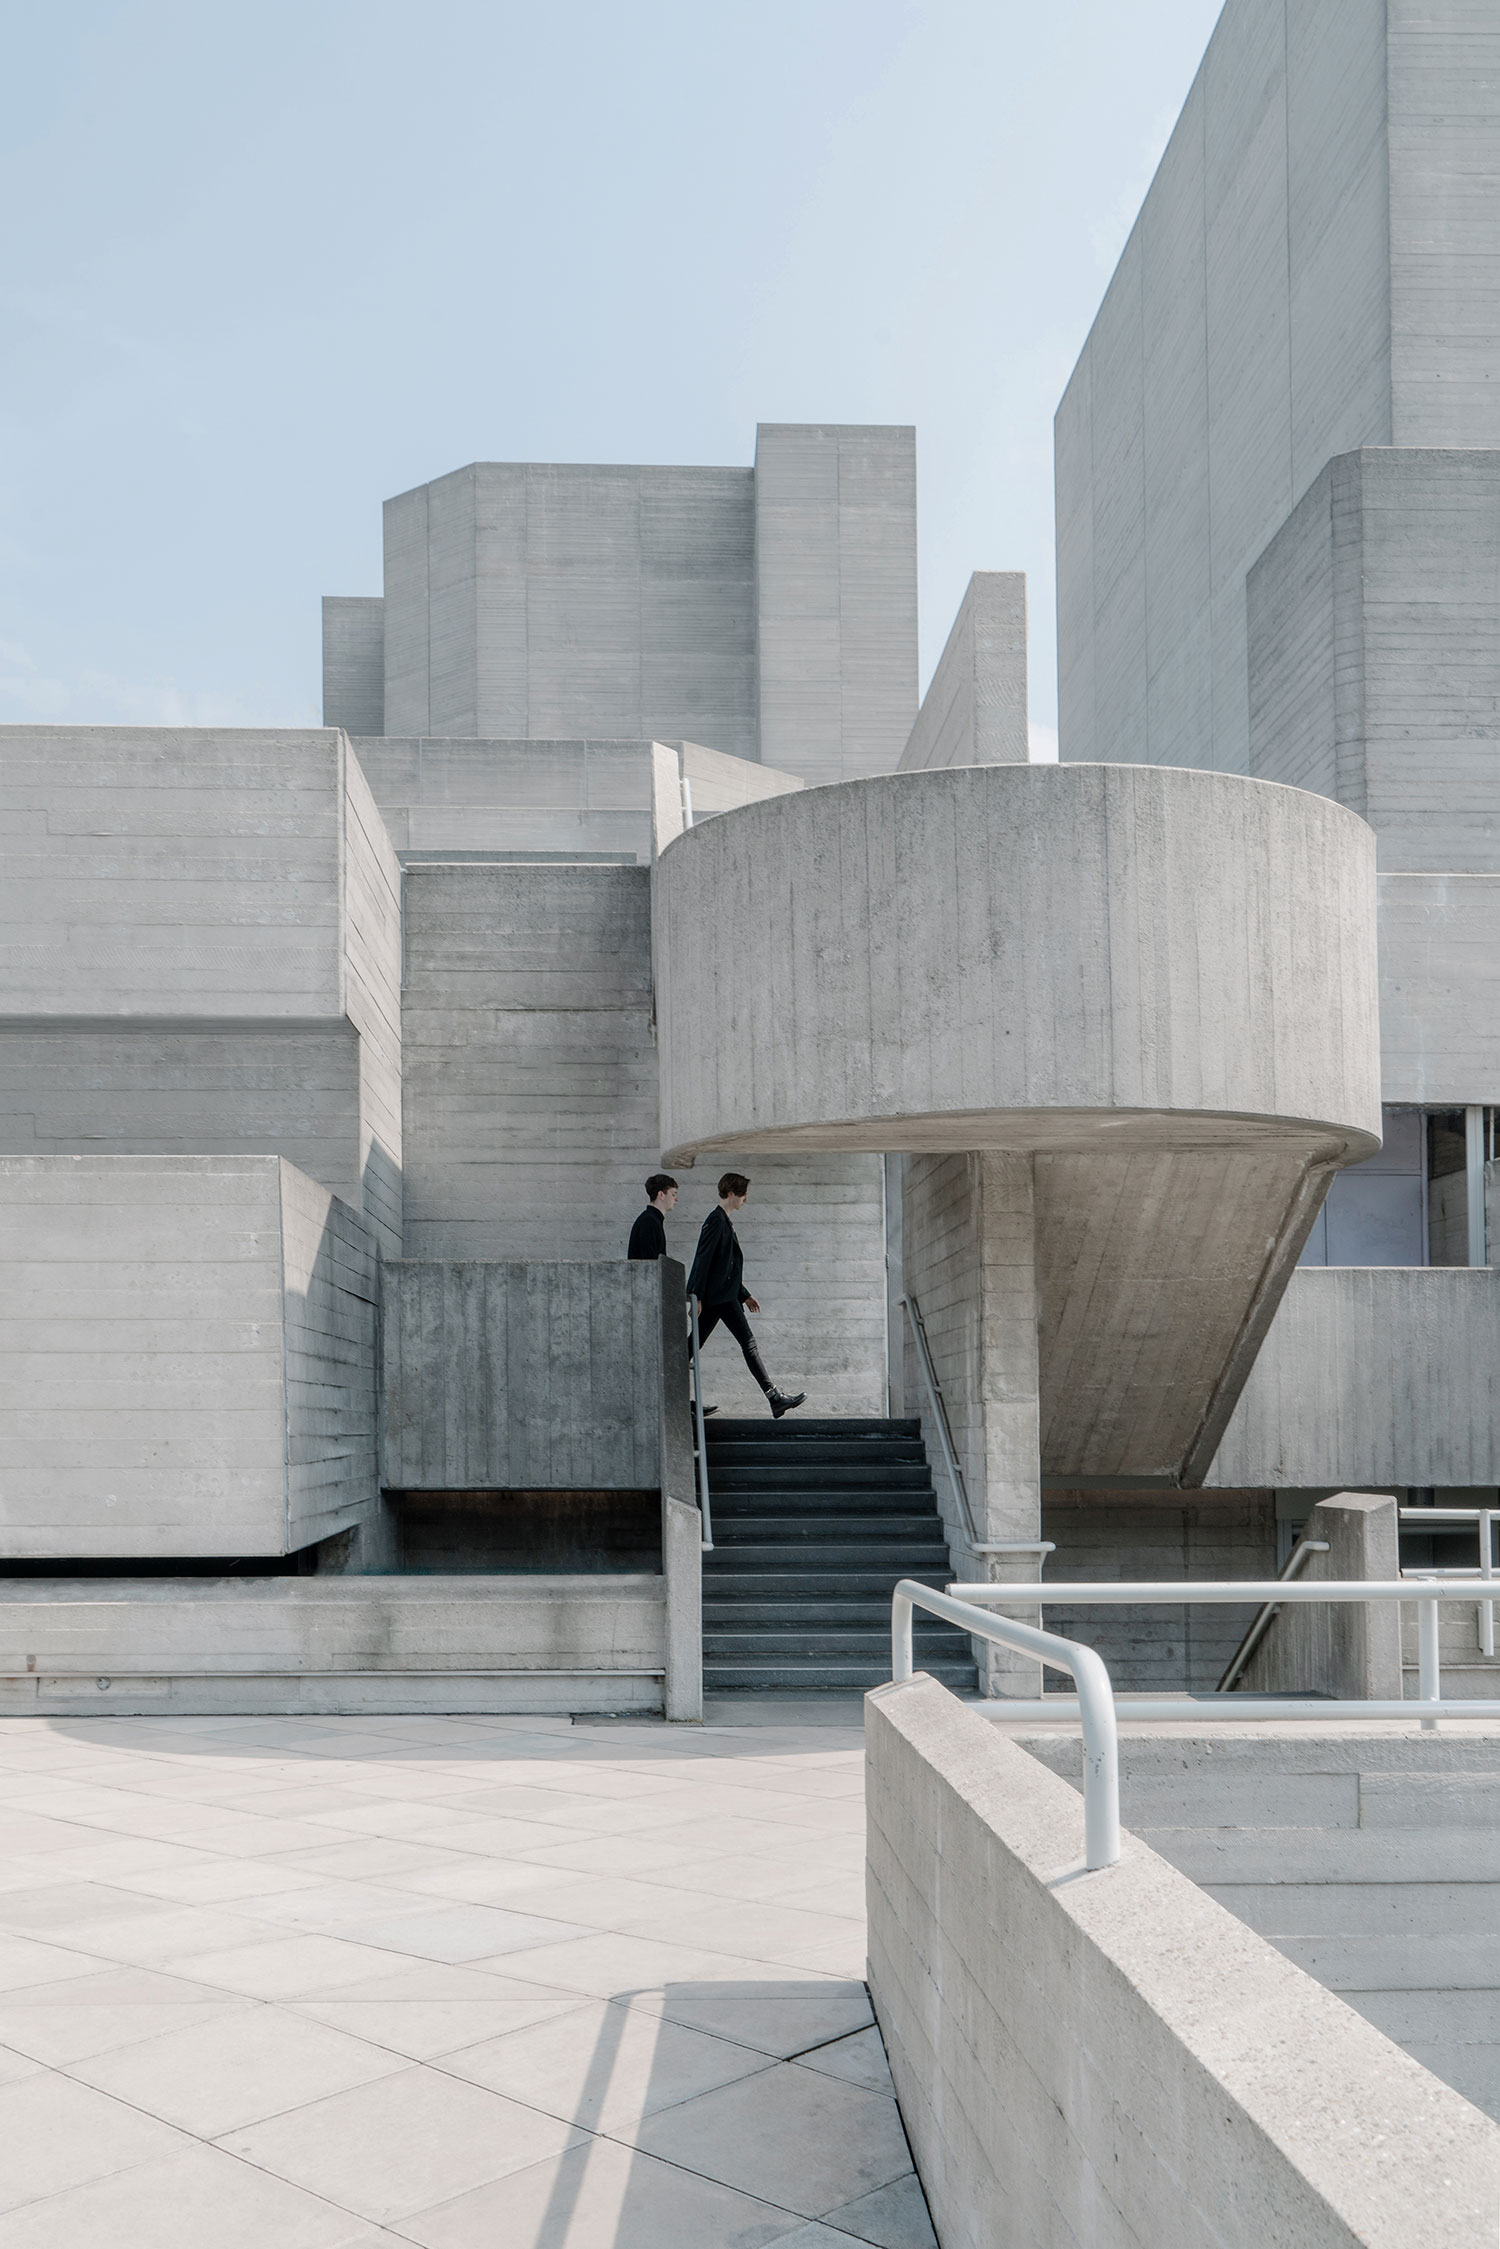 Minh T.'s Minimalist Take On Architecture, Geometry And